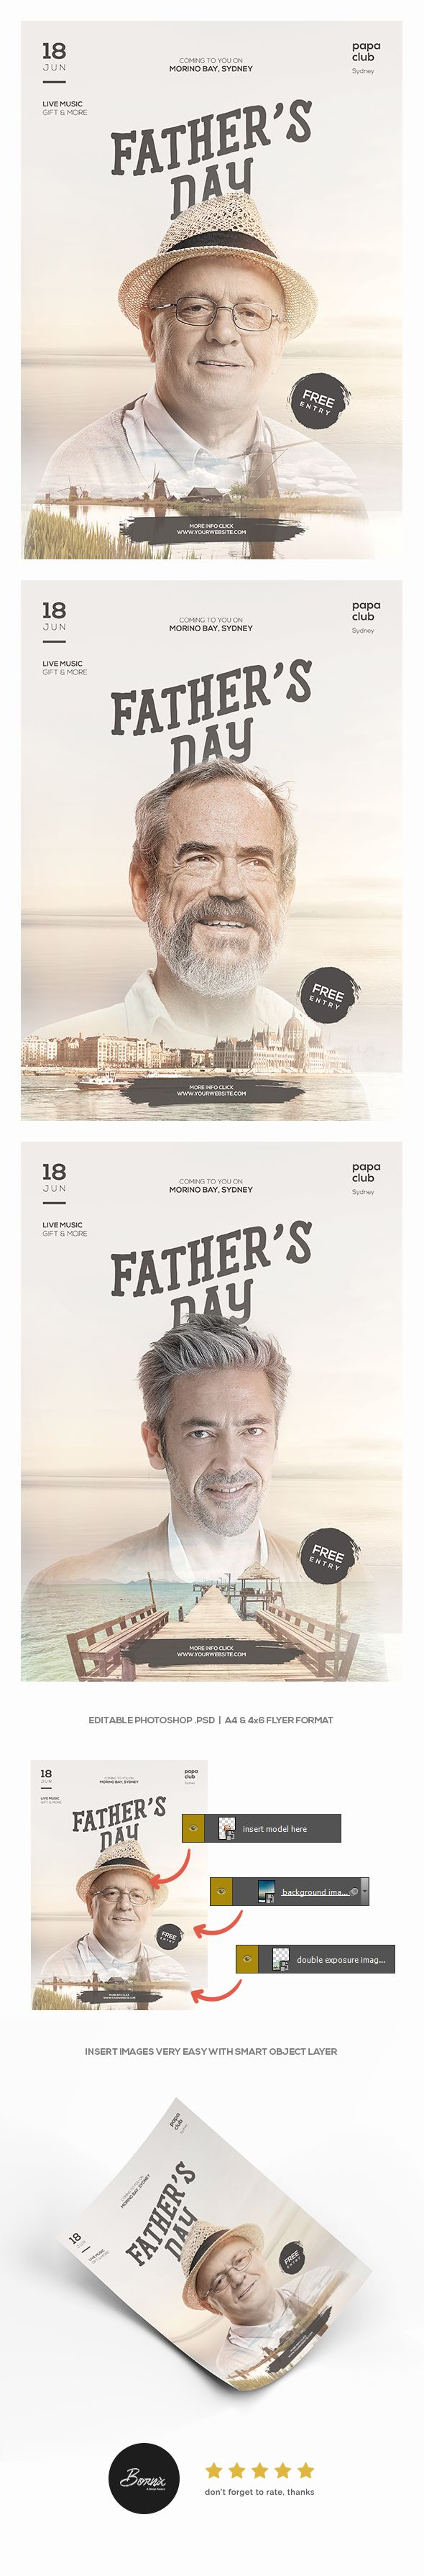 Father's Day flyer template for Photoshop. Check it out https://graphicriver.net/item/fathers-day-flyer/20087432 #flyer #poster #adobe #photoshop #psd #template #fathers #father #day #father's #ideas #creative #concept #inspiration #ads #advertisements #double #exposure #dramatic #cinematic #portrait #man